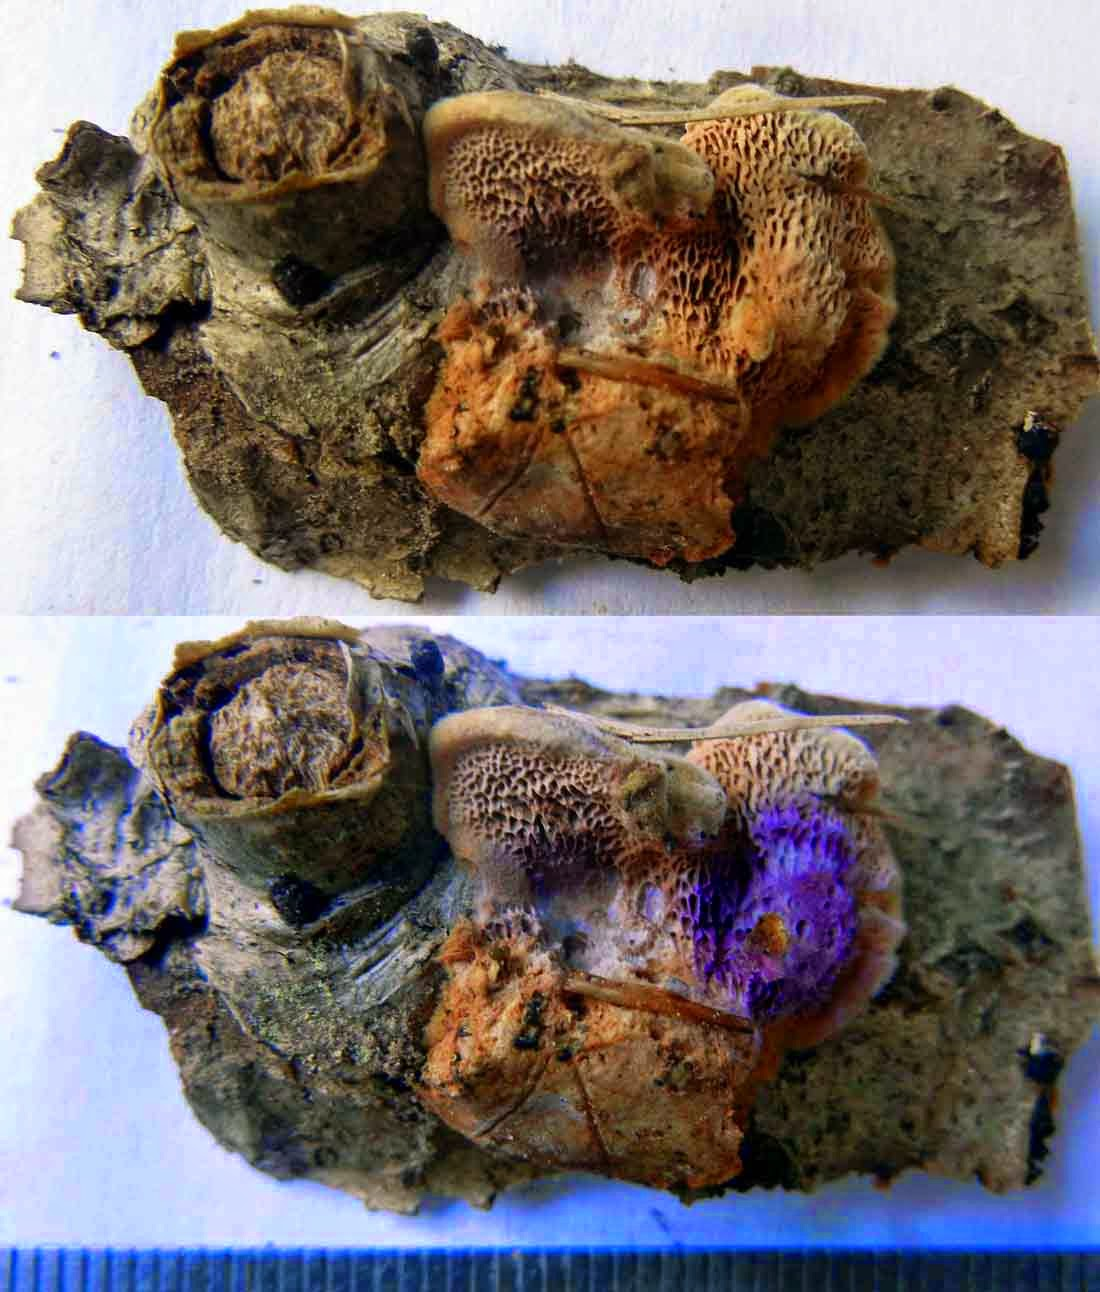 Hapalopilus nidulans turns purple with KOH or ammonia